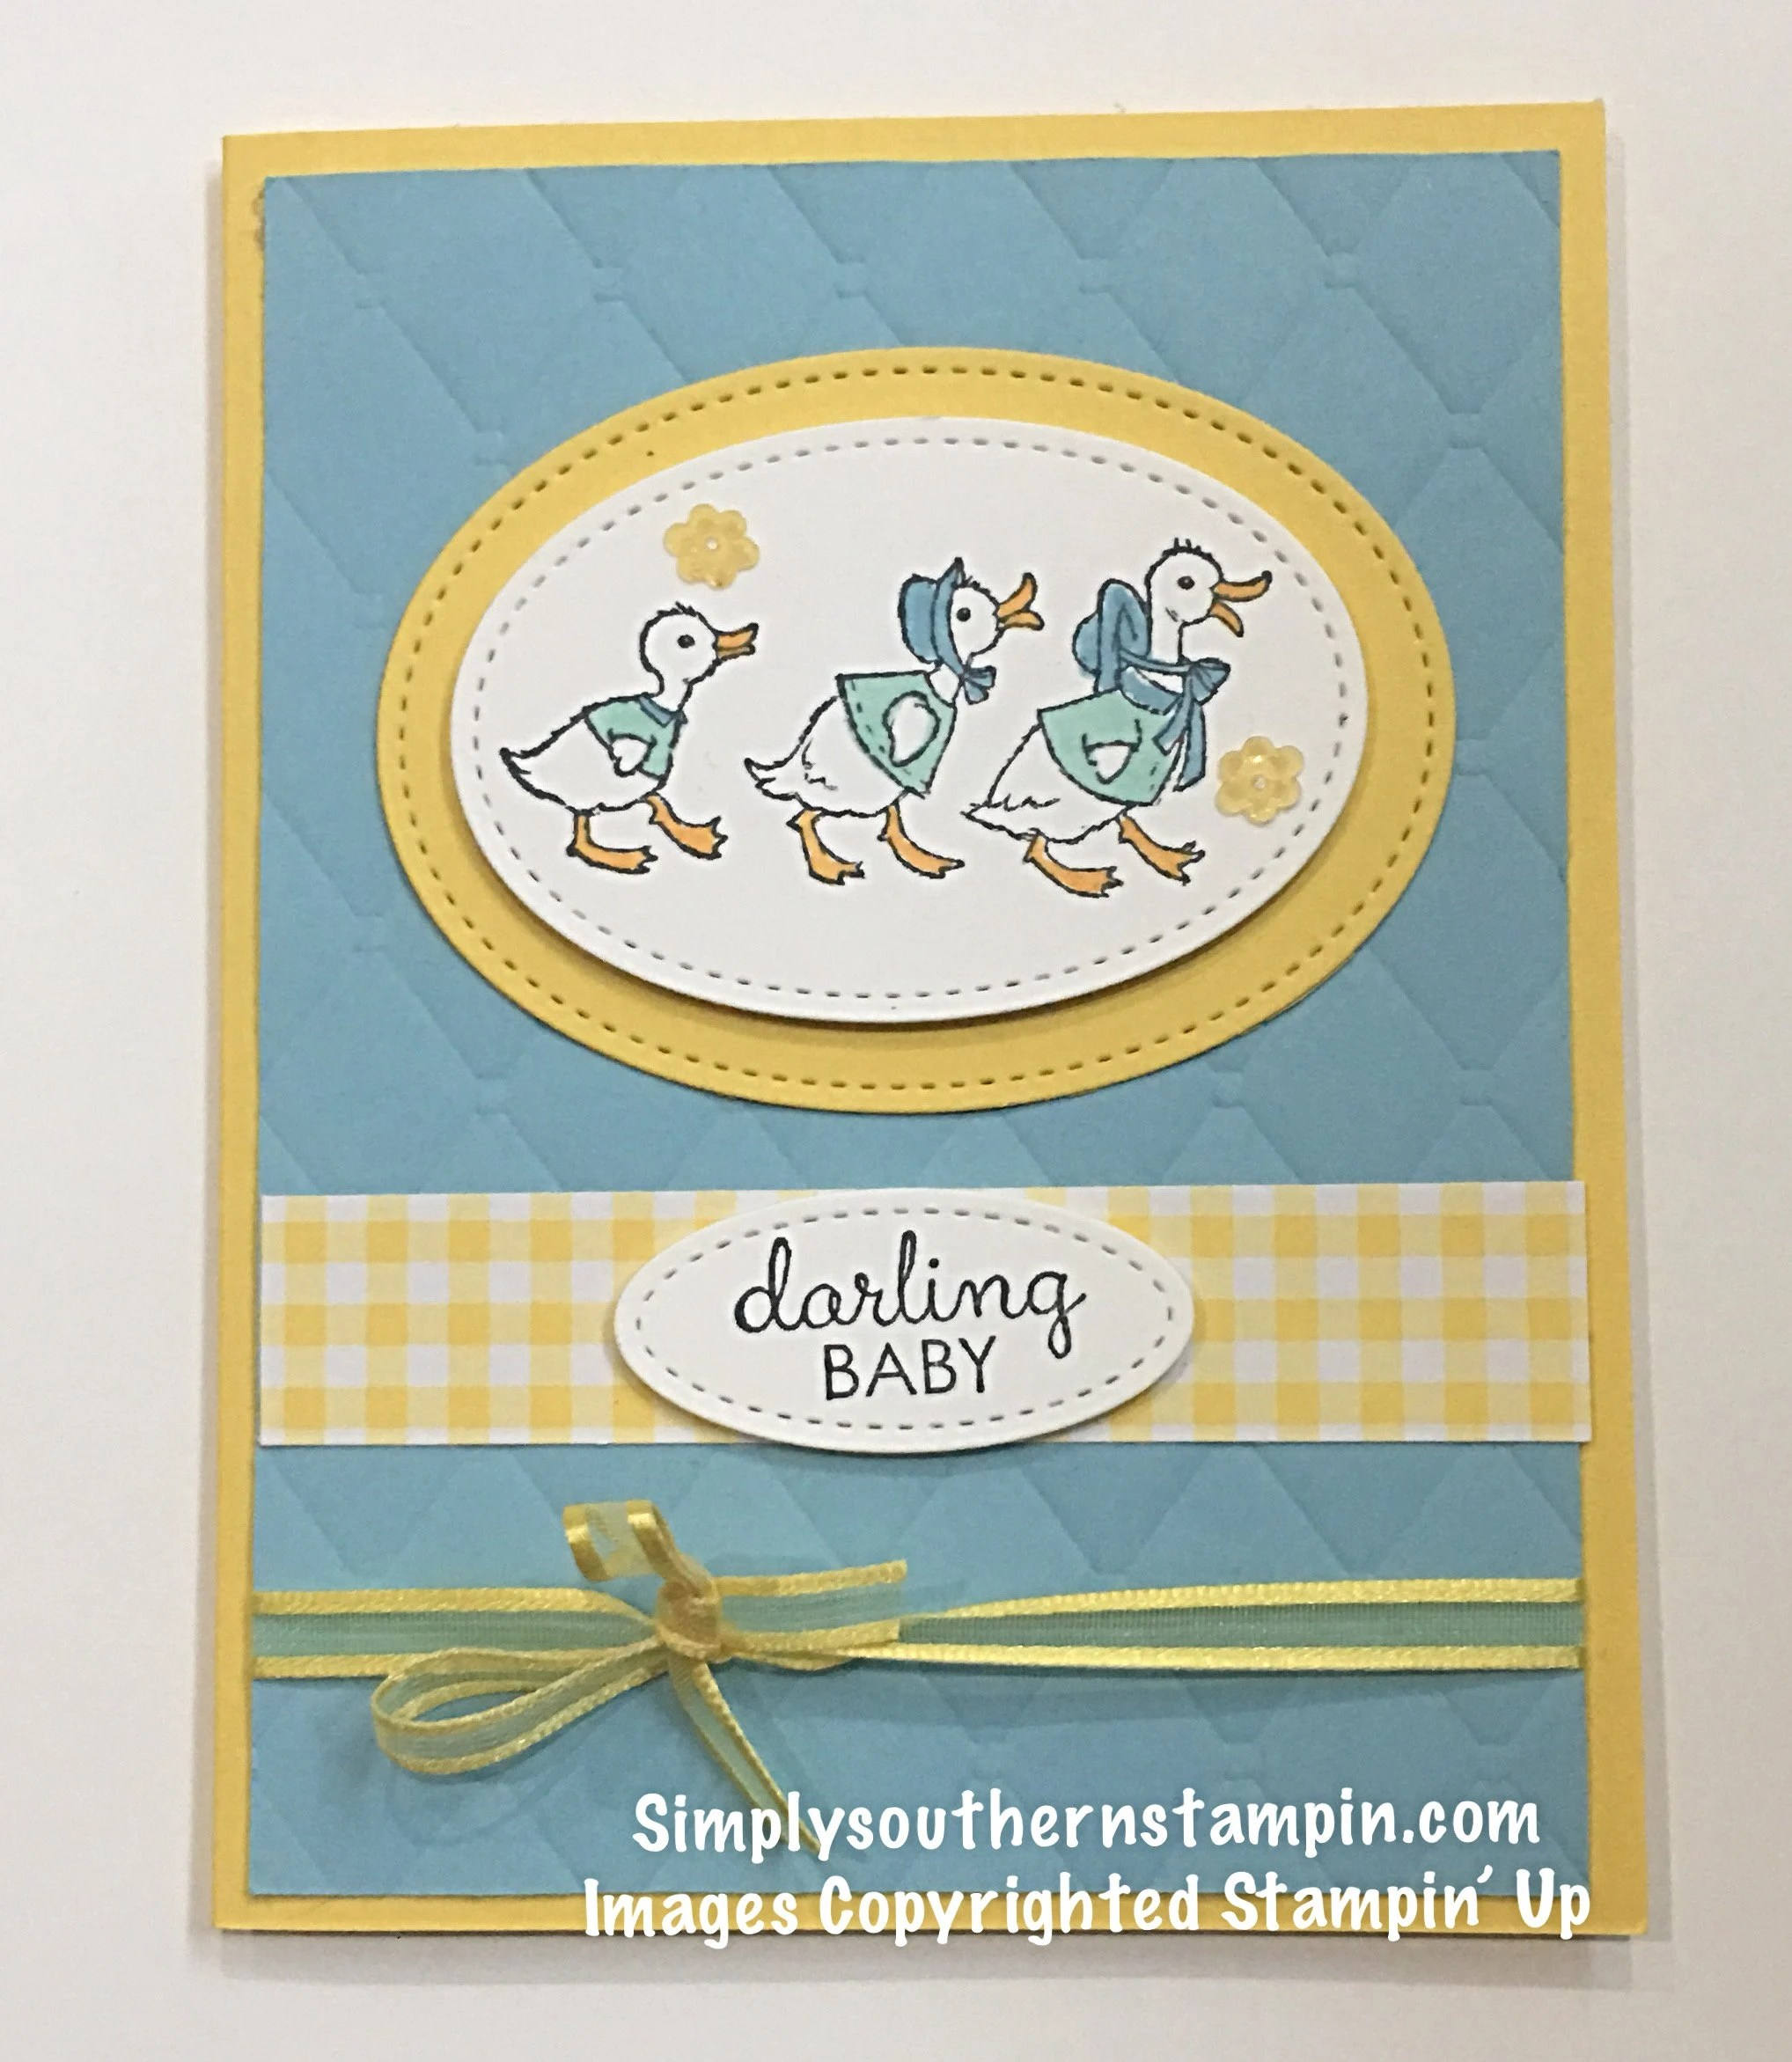 Stampin Up Karten Für Männer Stampin Up Fable Friends Handmade Embossed Card Envelope Made With The New Fable Friends